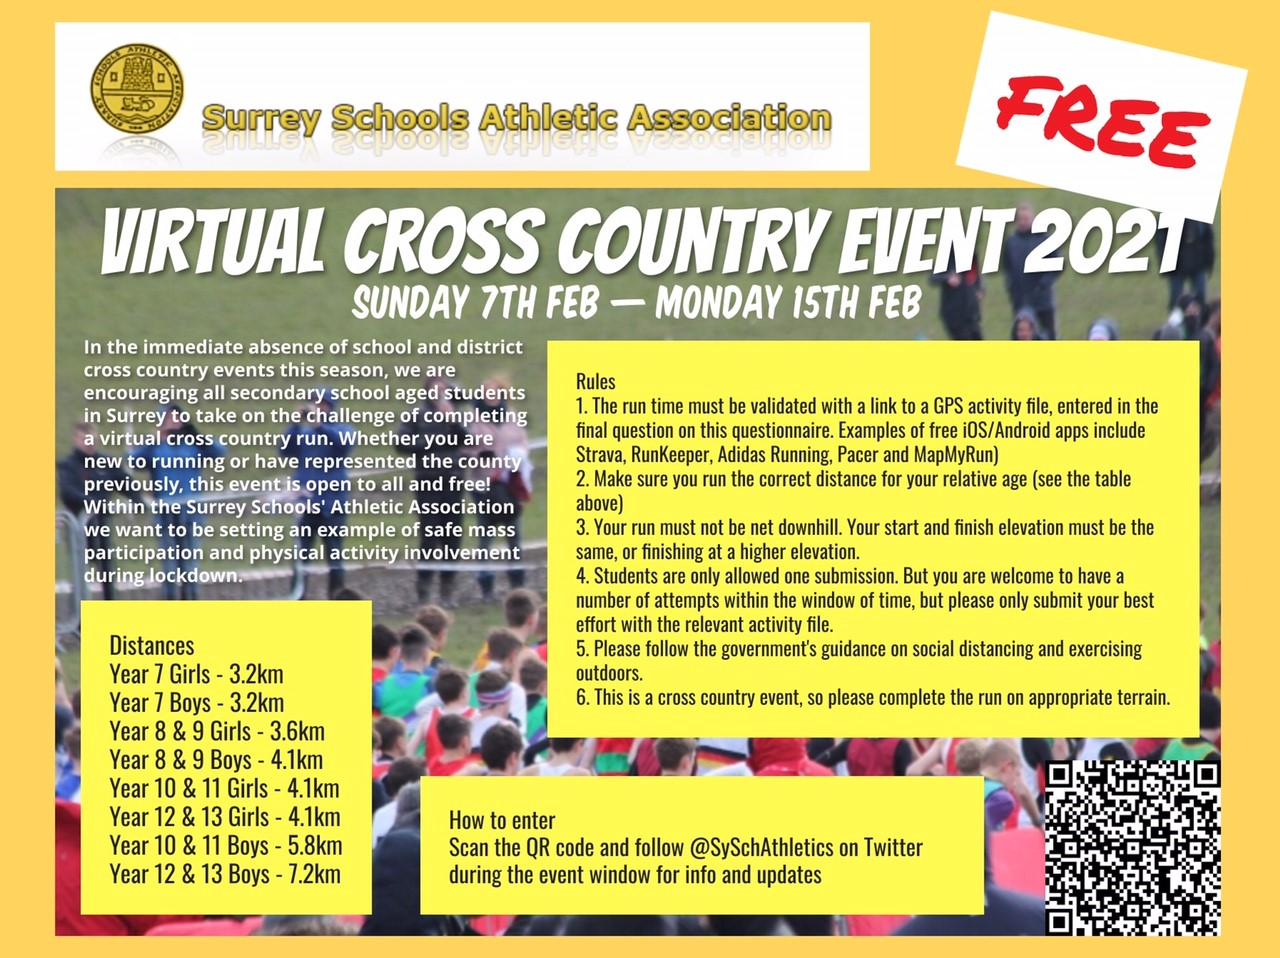 SSAA Virtual Cross Country Event Flyer